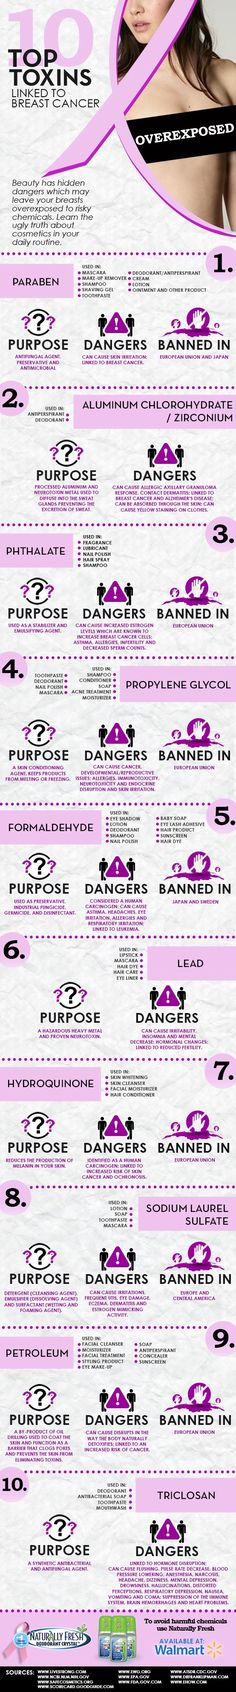 Friday's featured infographic: Breast cancer and cosmetics | harmless home - 10 cosmetics chemicals to avoid to reduce breast cancer risk